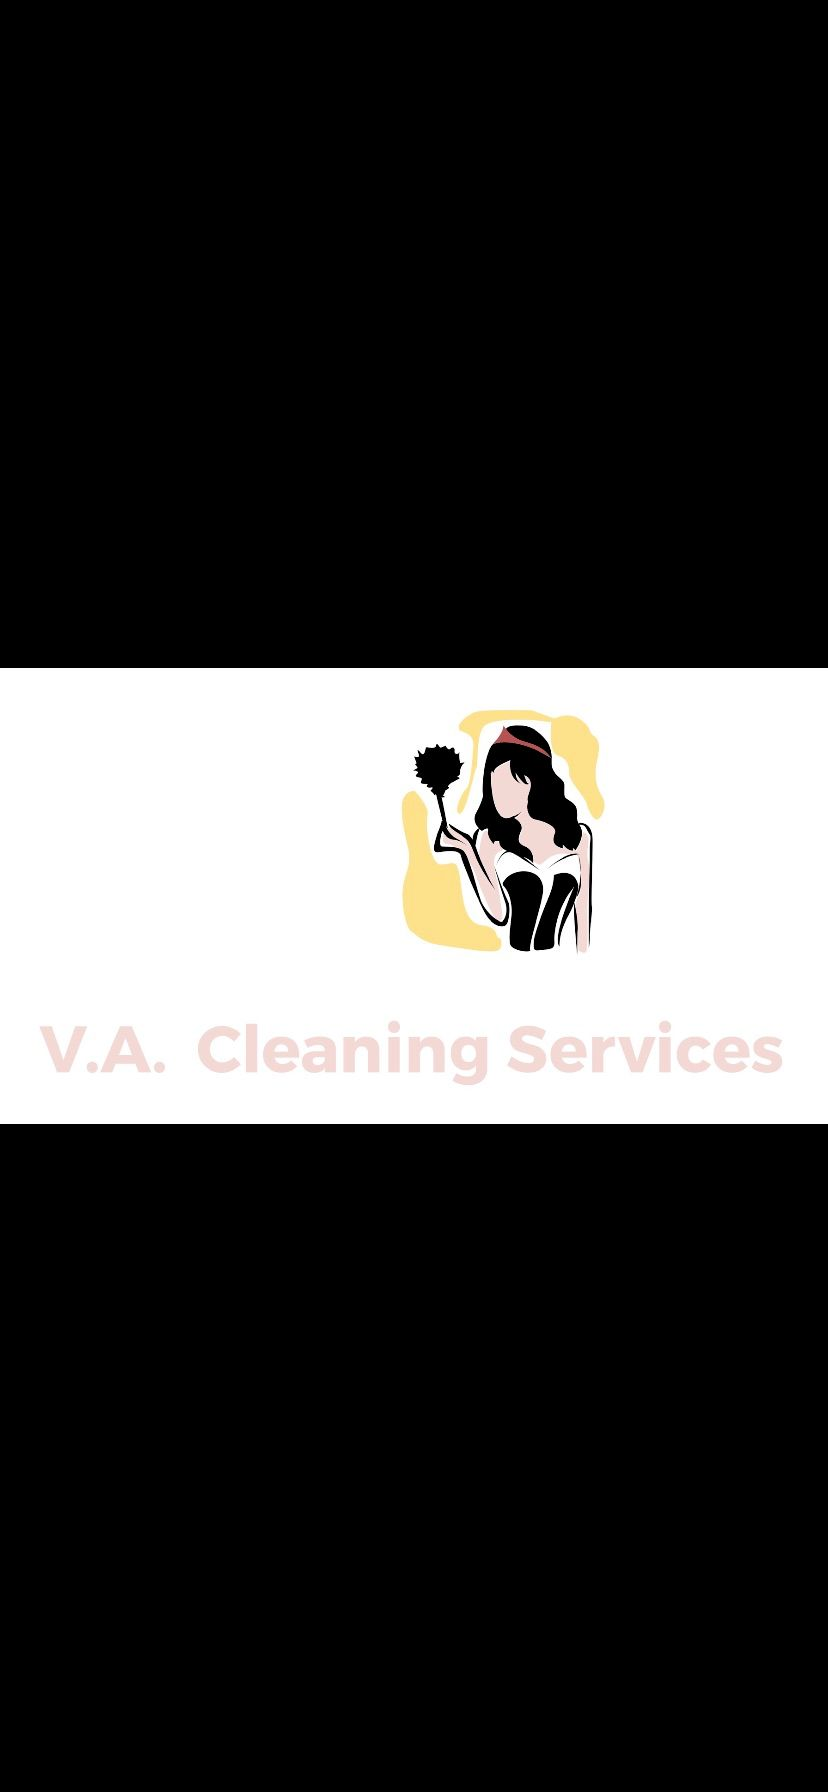 V.A Cleaning Services